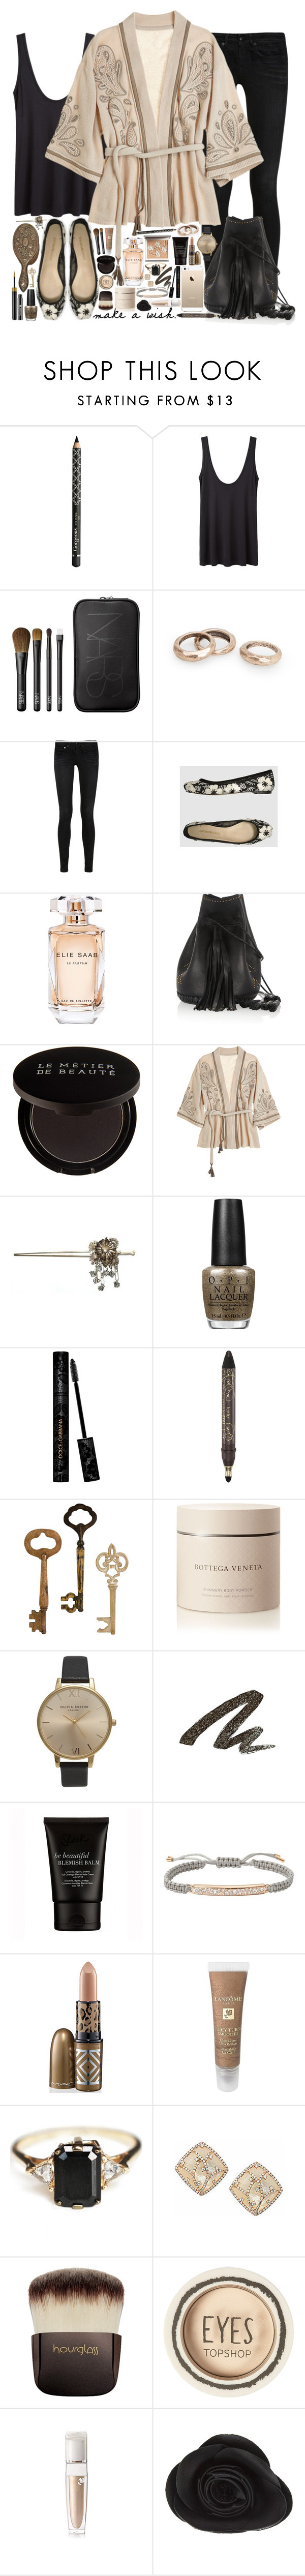 """""""make a wish"""" by chrylou ❤ liked on Polyvore featuring Gorgeous Cosmetics, The Row, NARS Cosmetics, MANGO, R13, Emporio Armani, Elie Saab, Wendy Nichol, Le Métier de Beauté and Calypso St. Barth"""